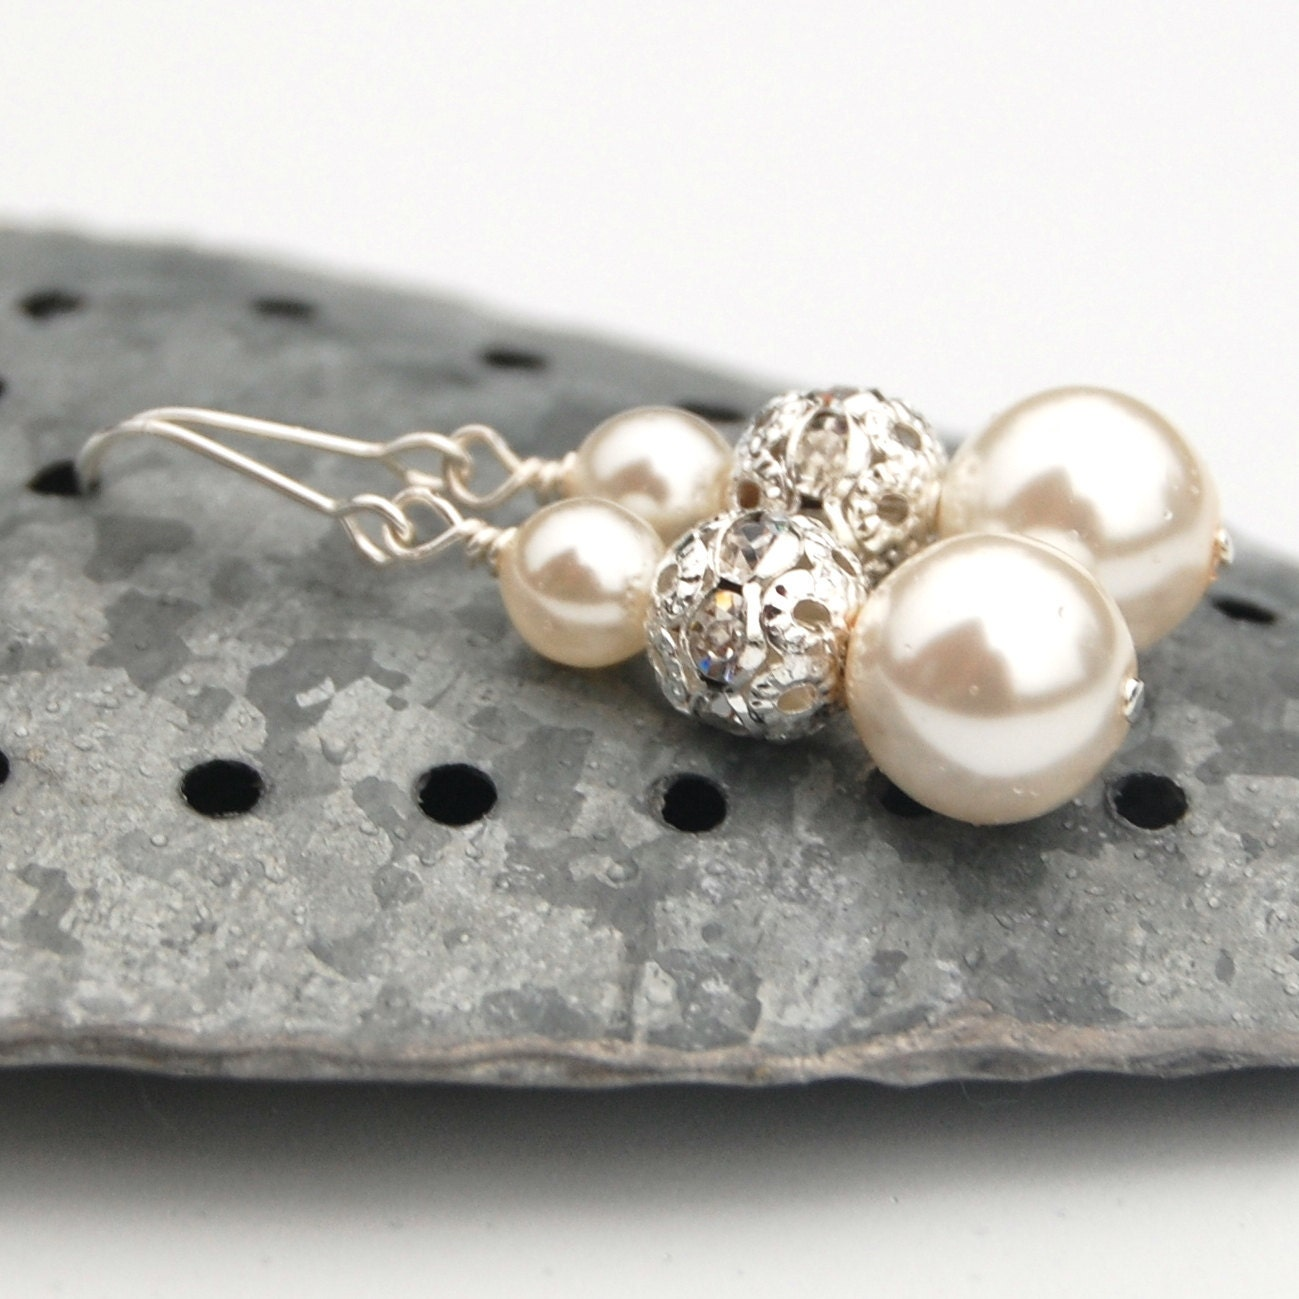 Bridal Jewelry Sparkling Ivory Pearl Earrings Modern Wedding